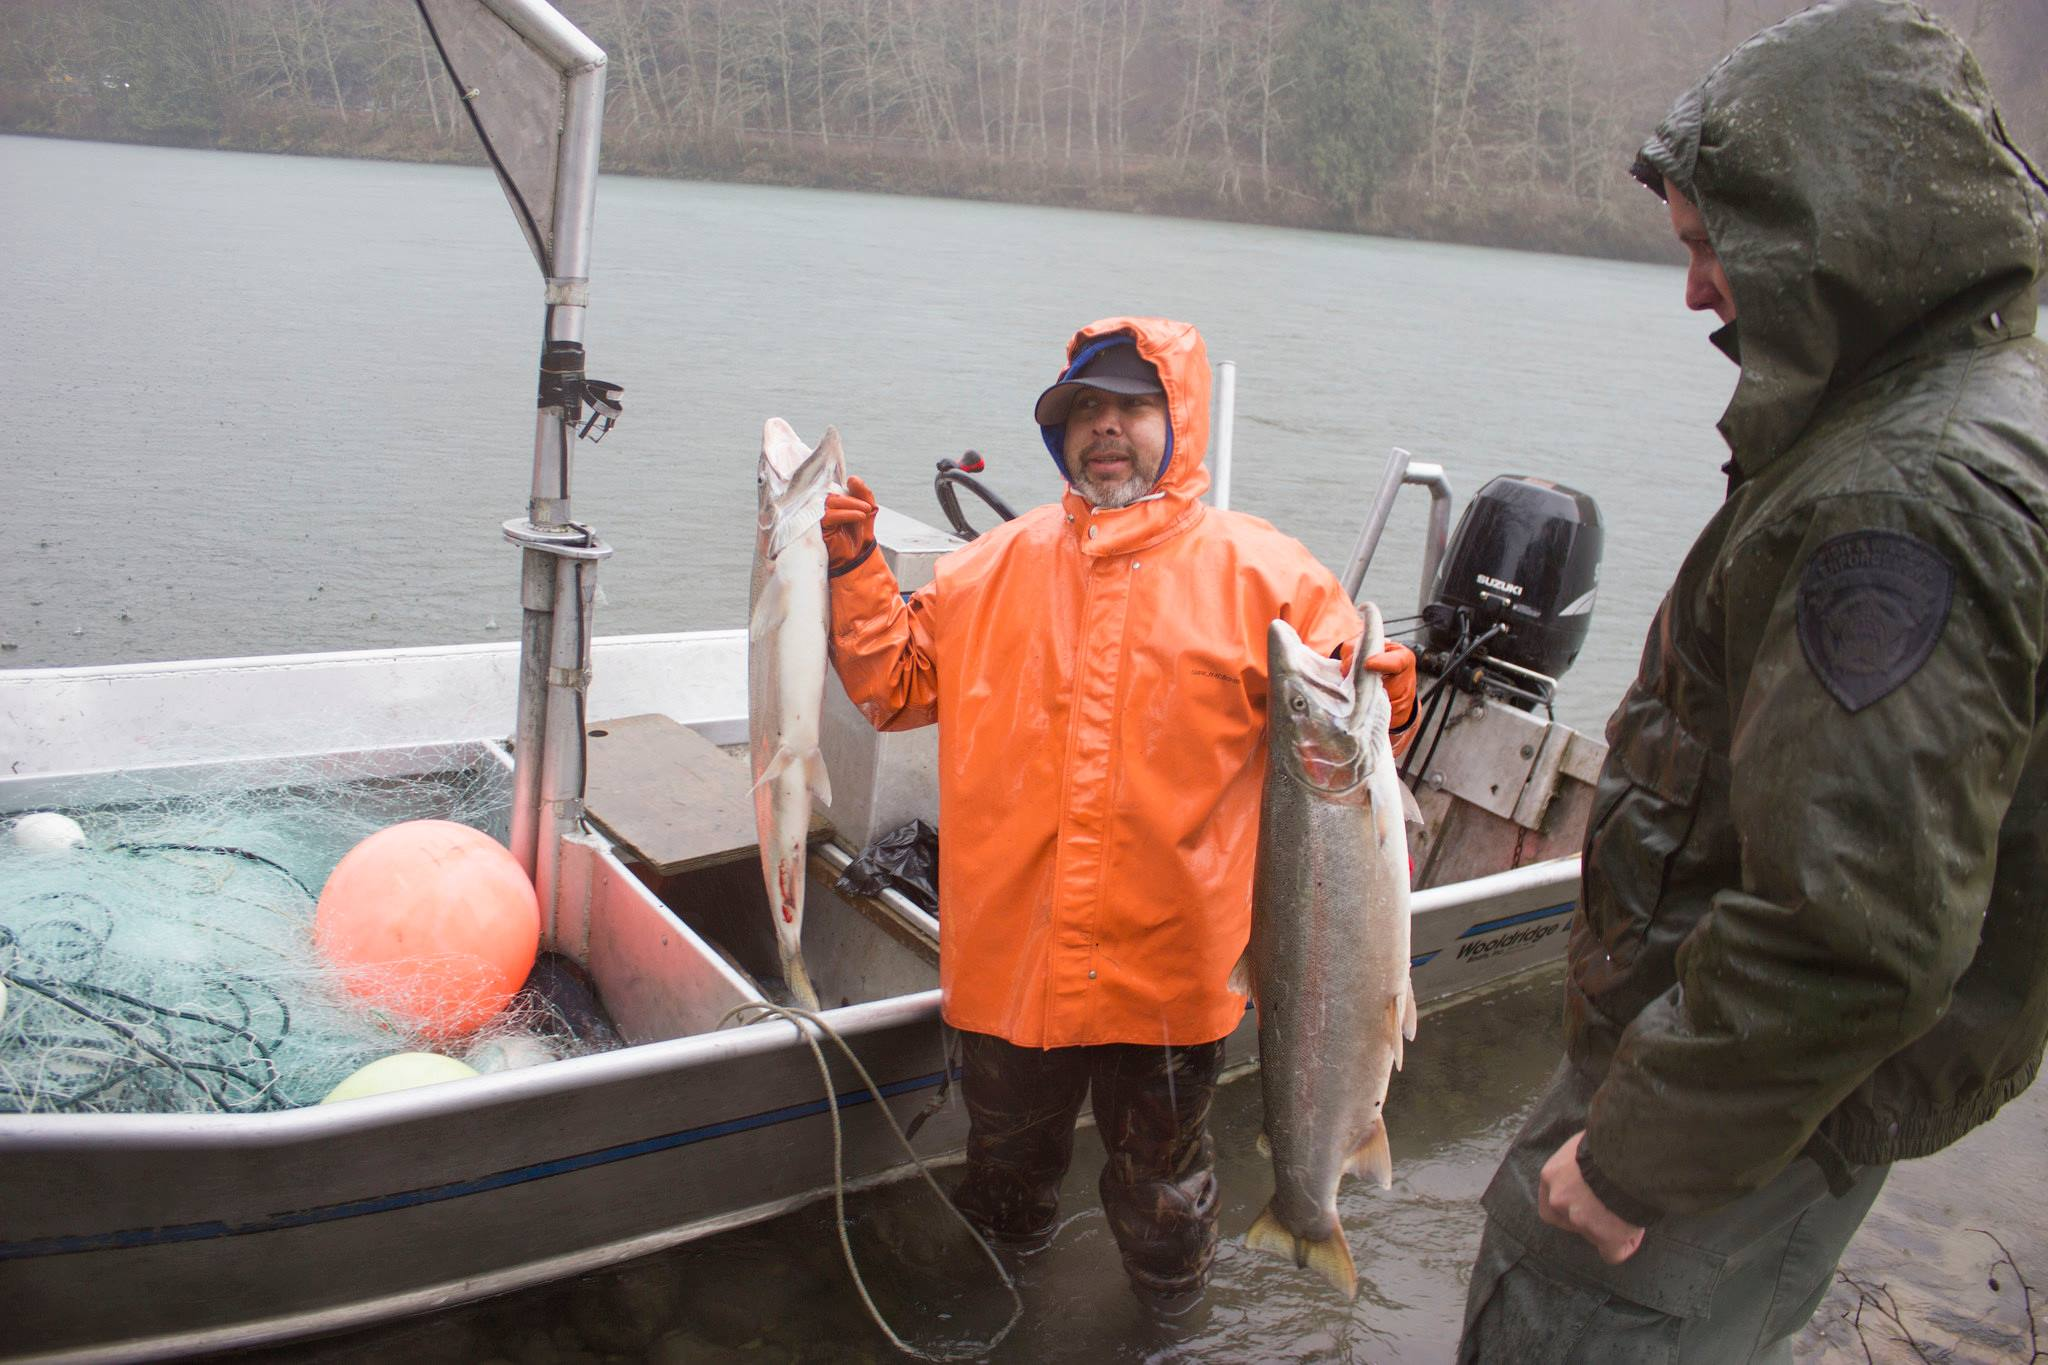 Lorraine Loomis: Eating fish shouldn't be risky for Washington